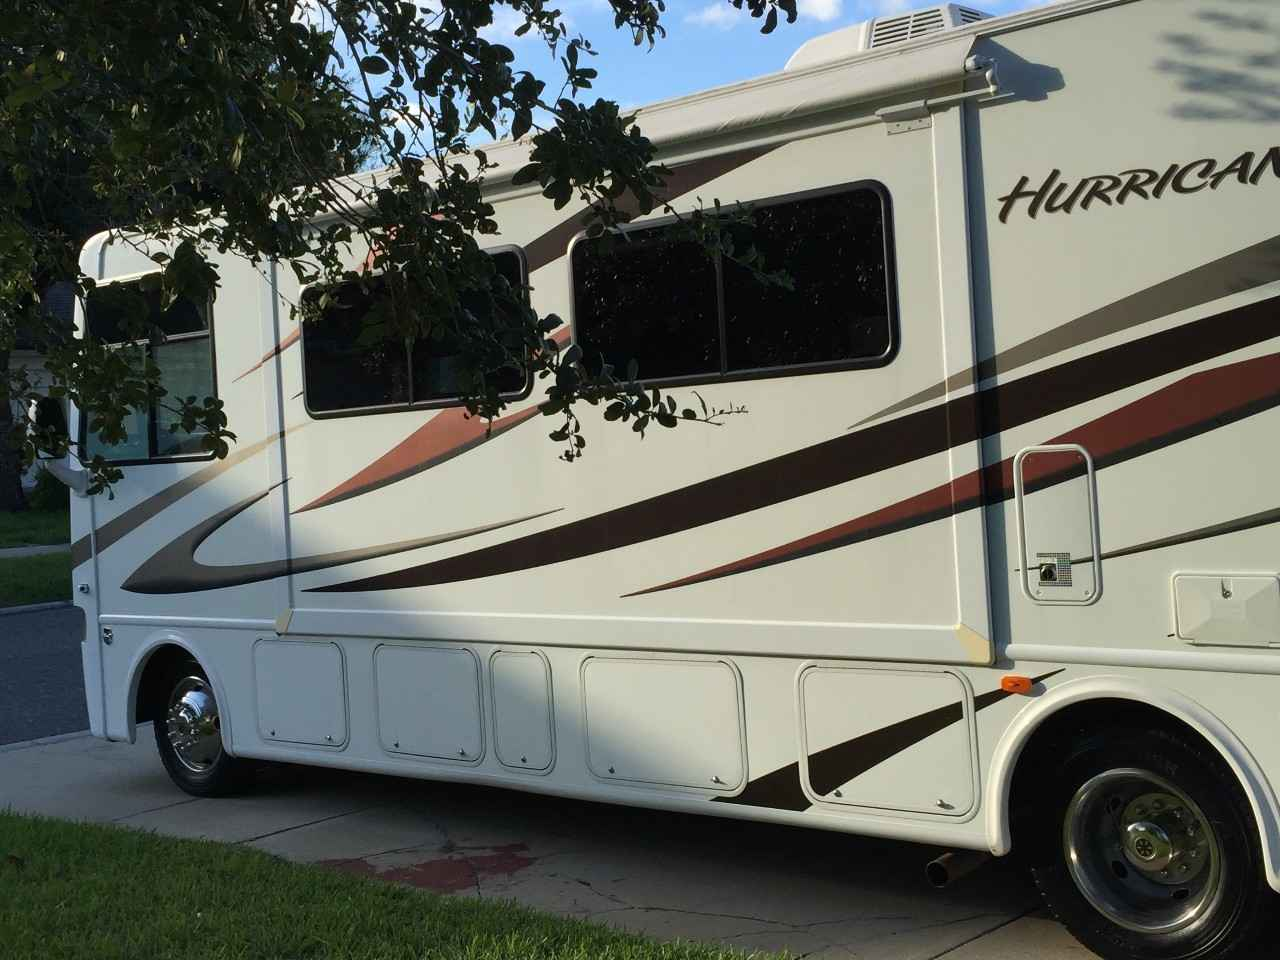 2012 used thor motor coach hurricane 31j class a in florida fl for Motor and vehicles fl